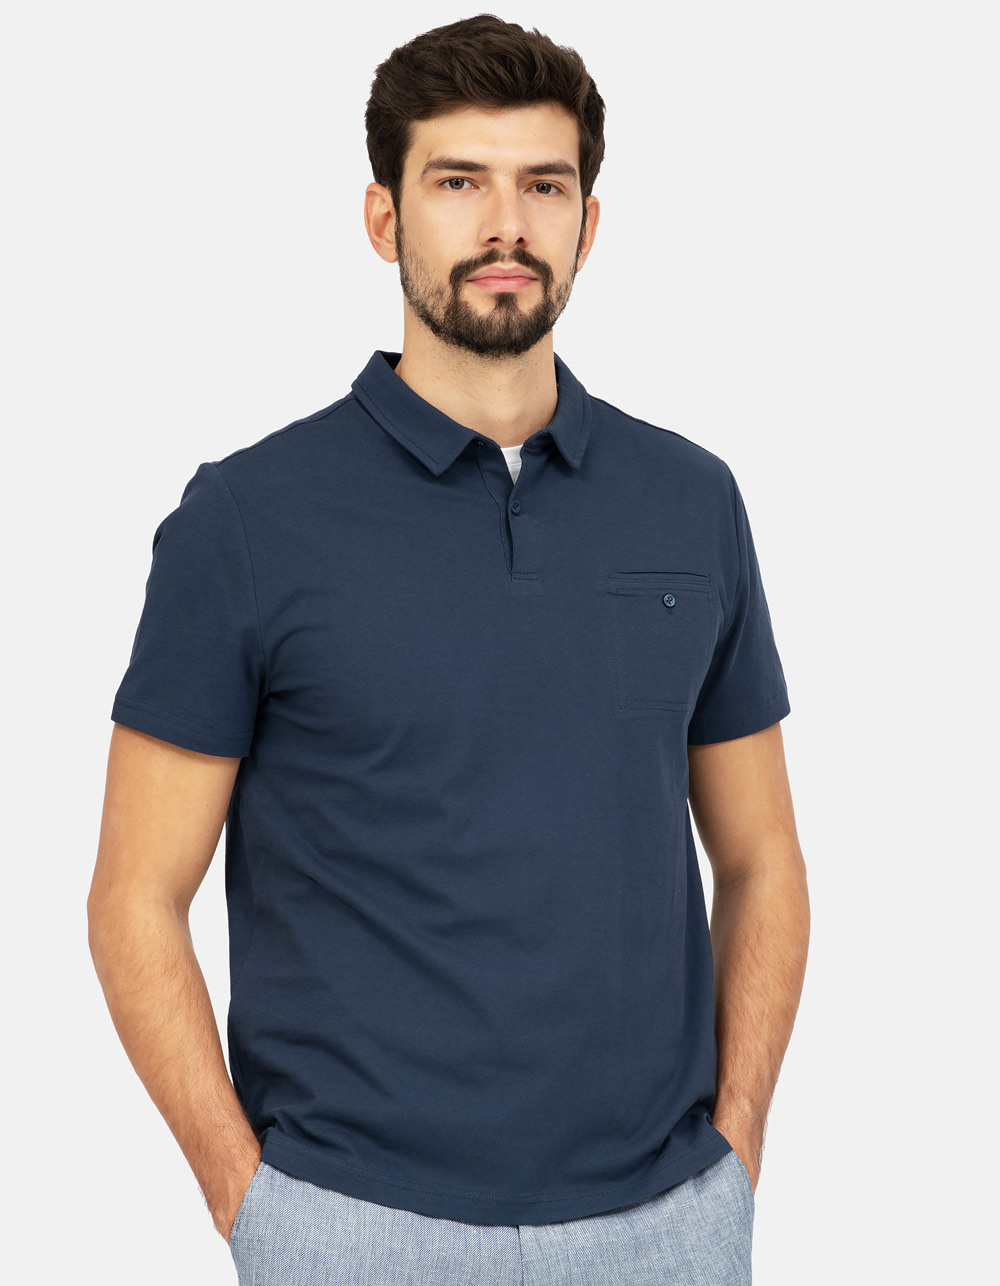 Navy blue pocket polo shirt